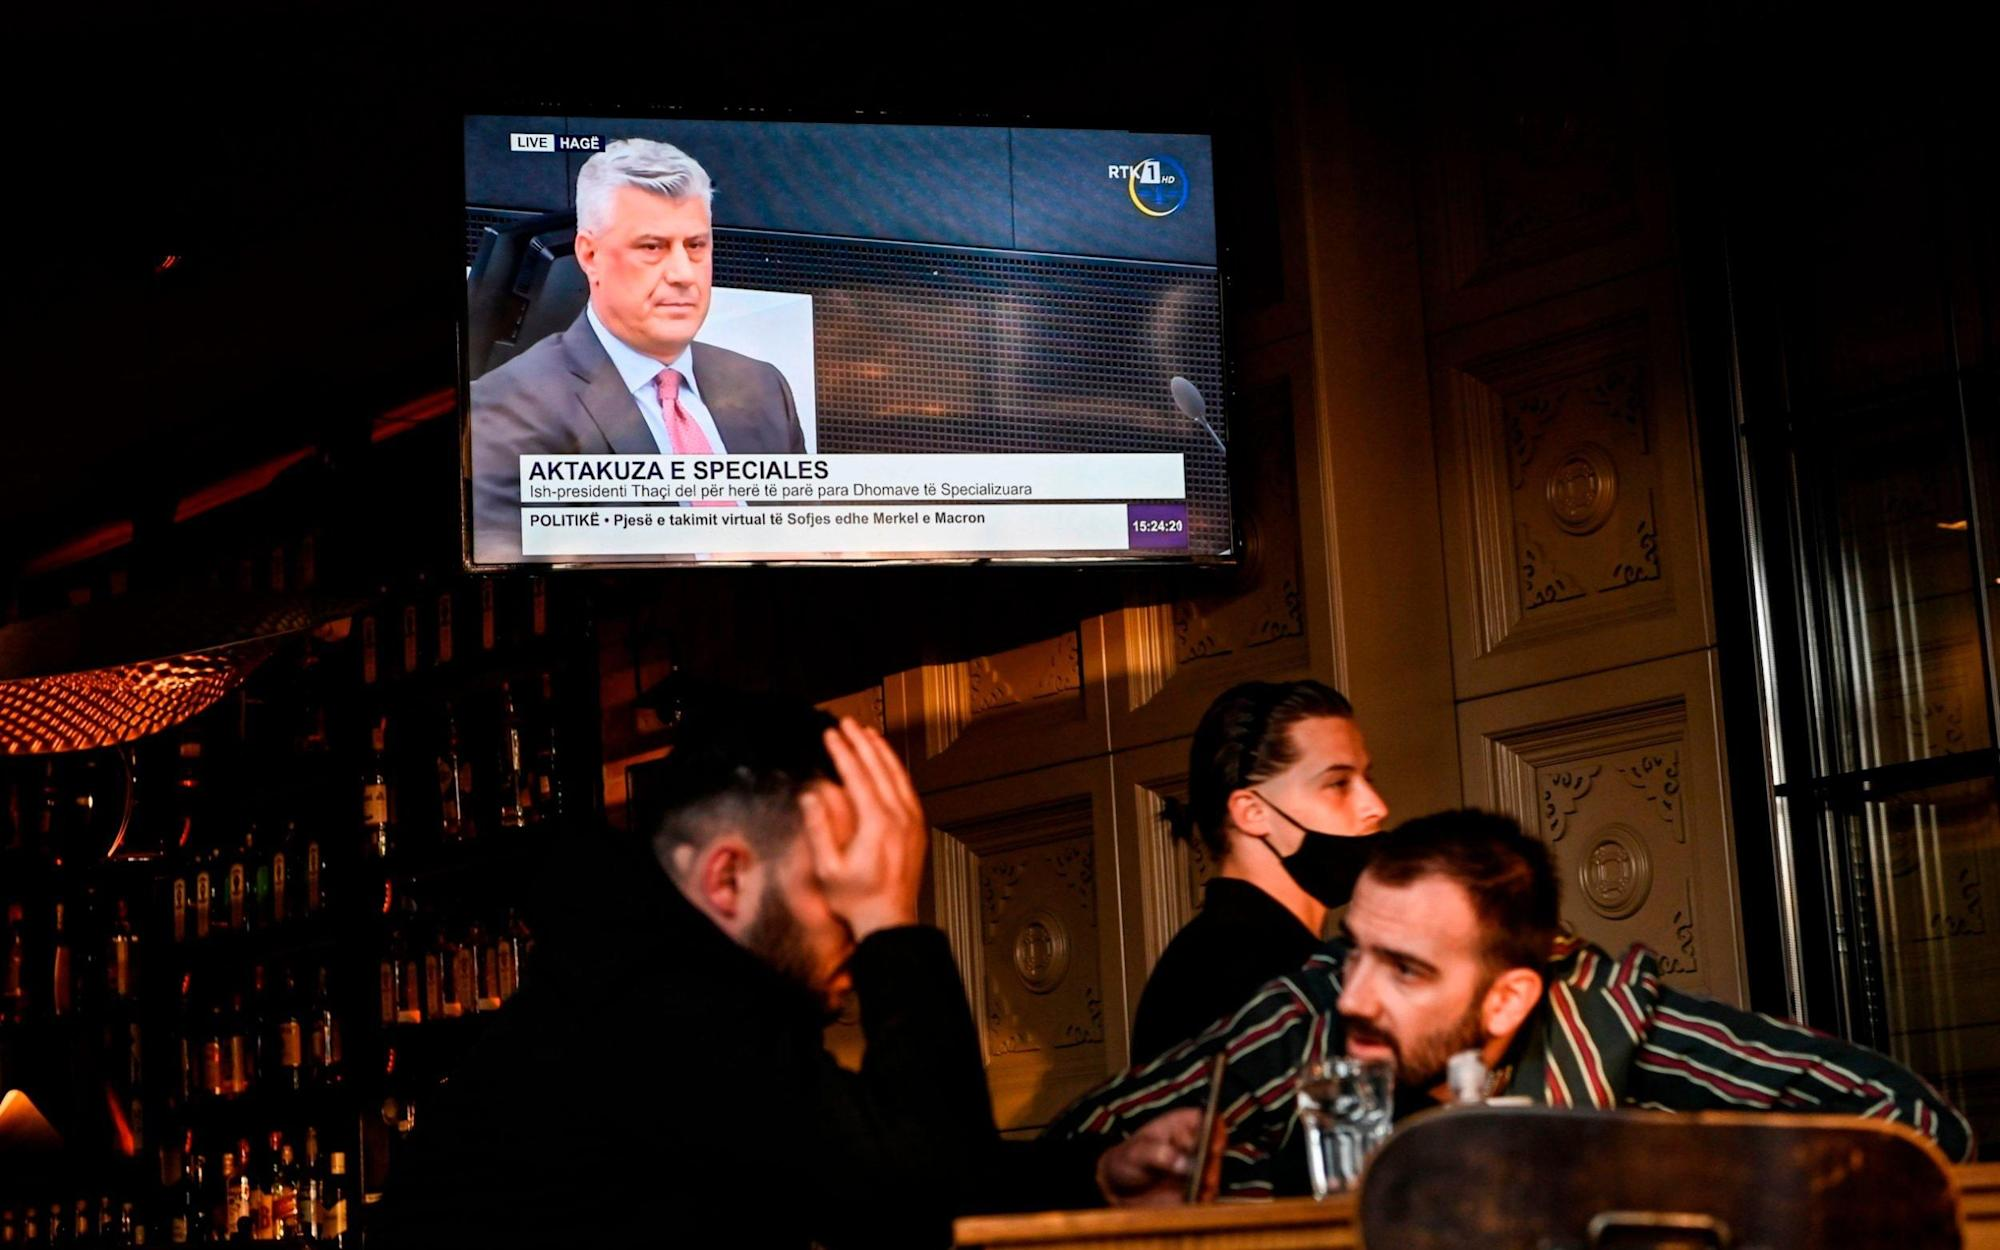 Kosovo's former president Hashim Thaci pleads not guilty at Hague war crimes trial